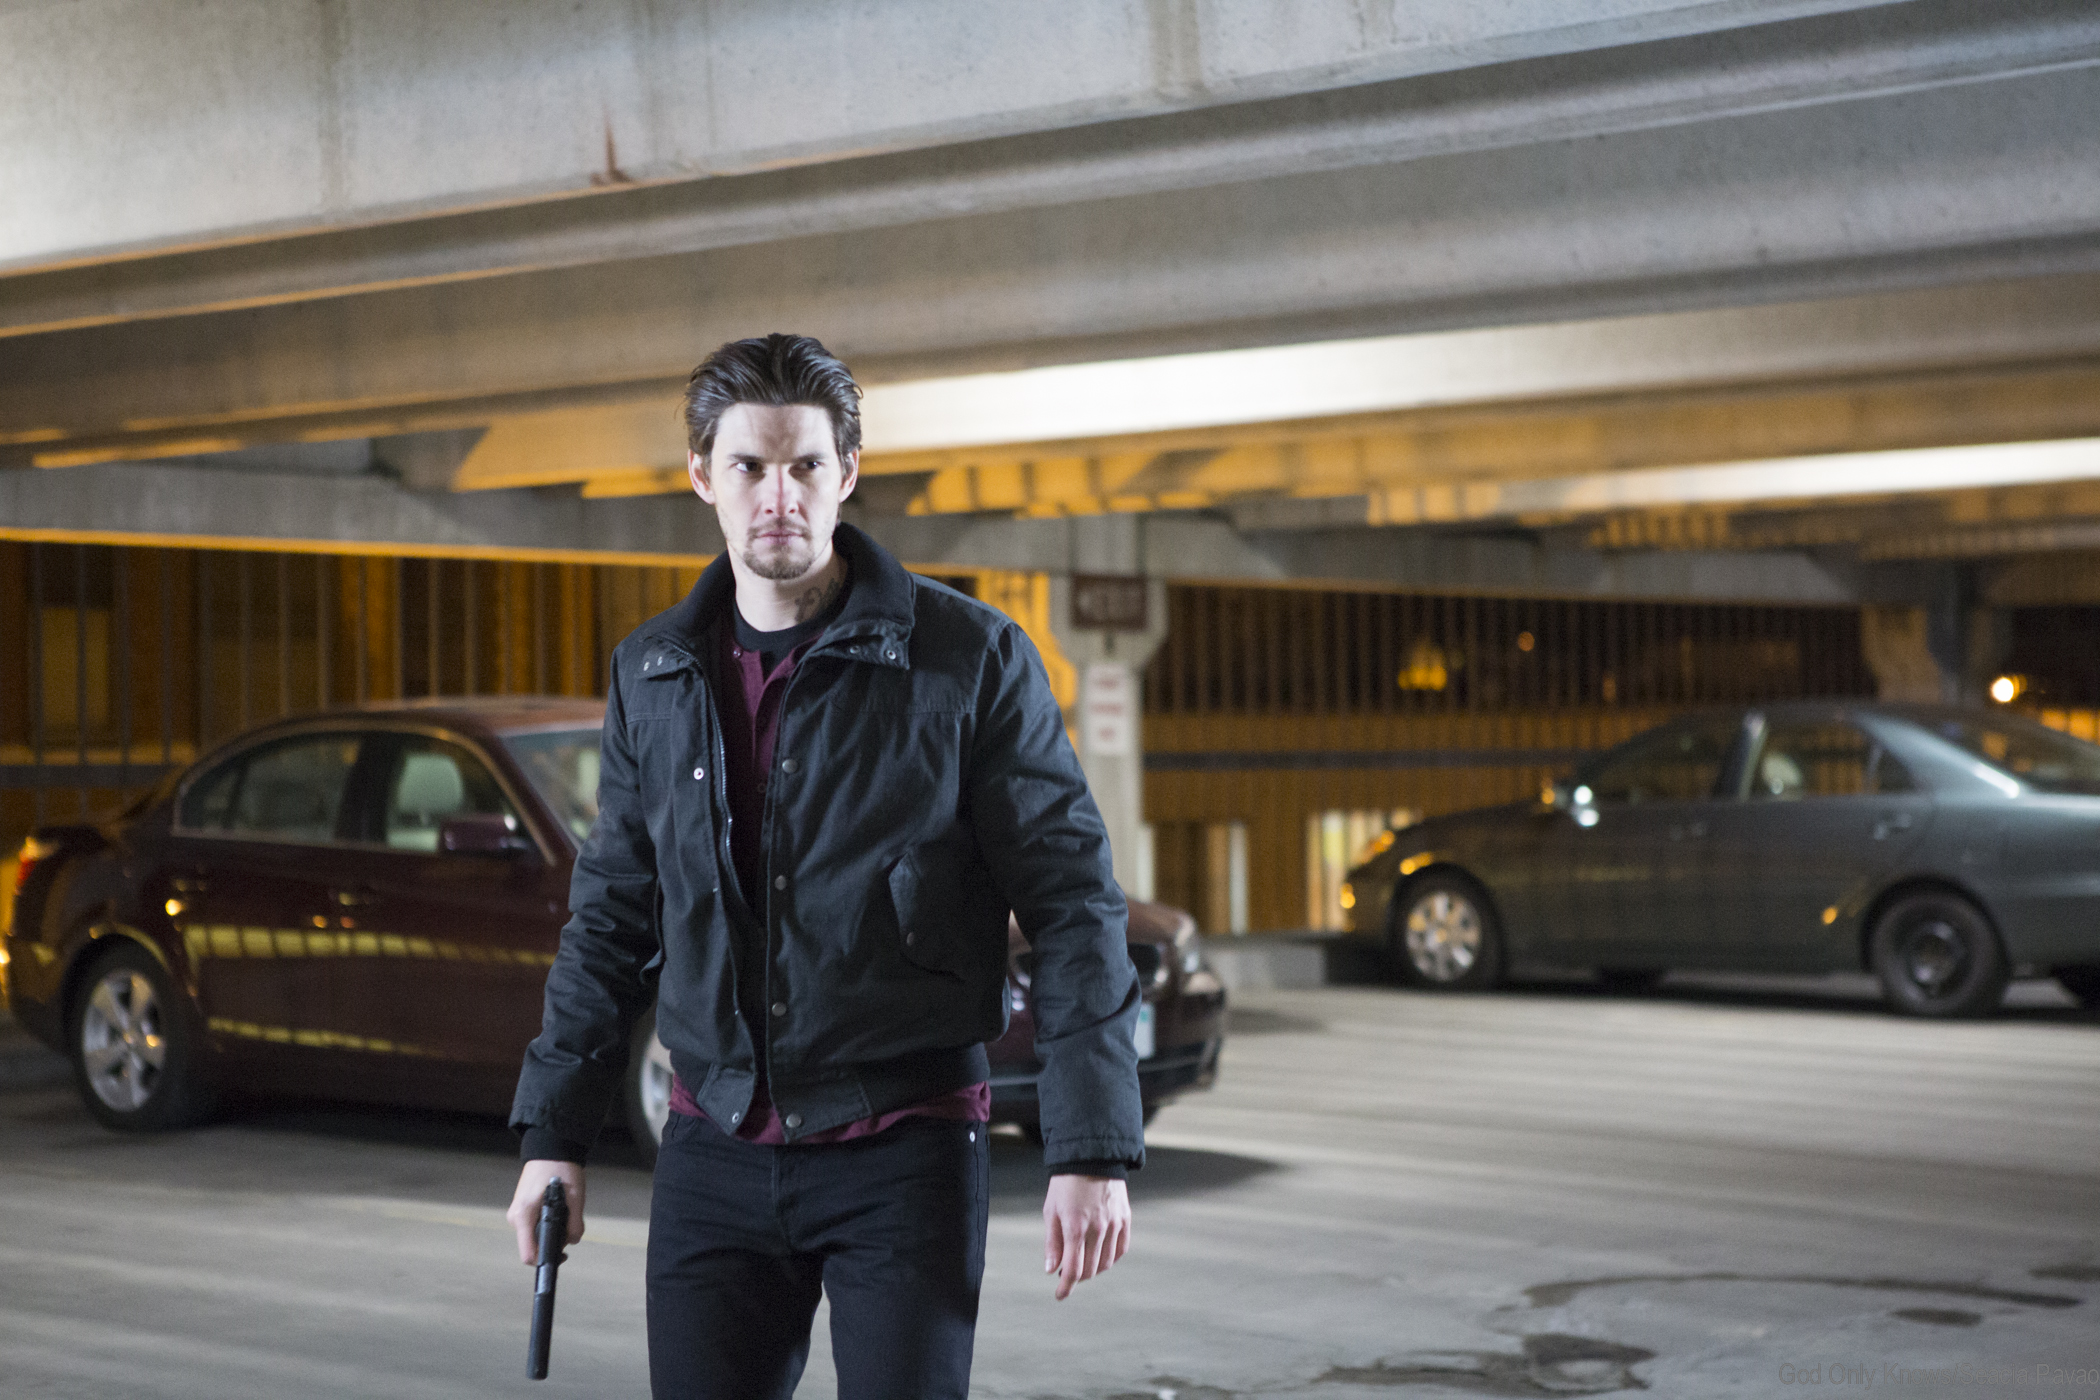 Hickey's crime drama comes from very real place - The Boston Globe